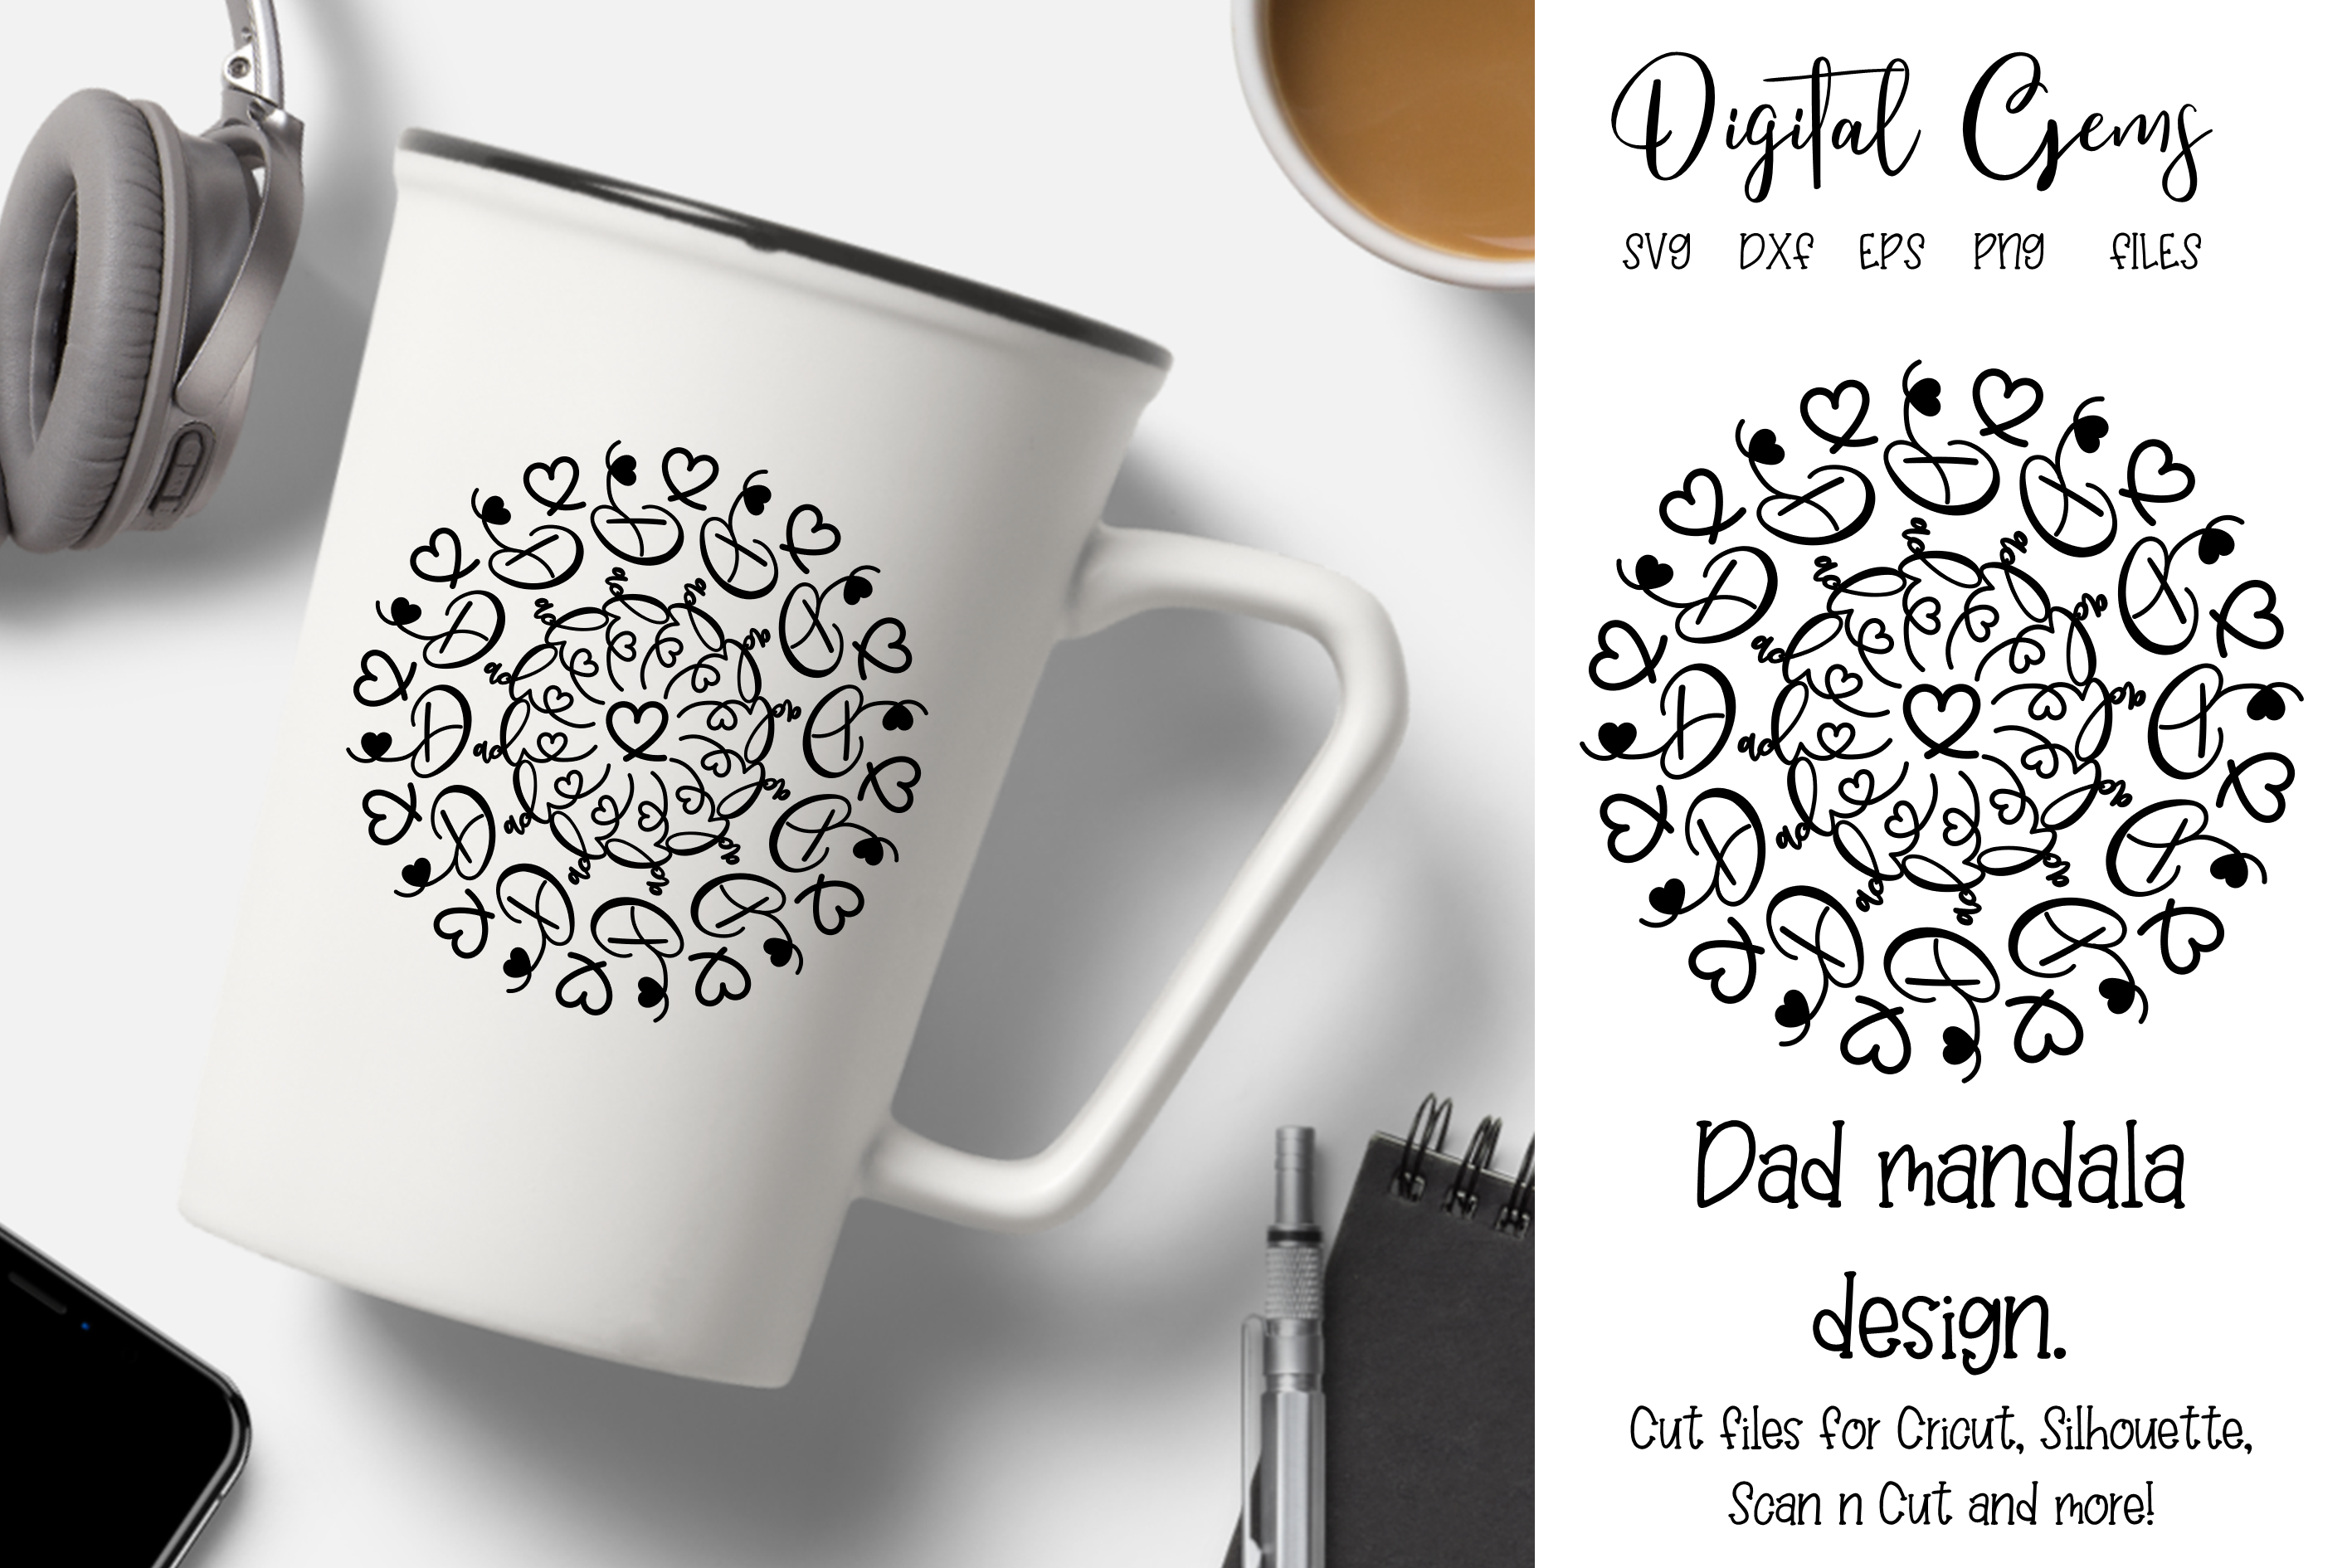 Download Free Dad Mandala Design Graphic By Digital Gems Creative Fabrica for Cricut Explore, Silhouette and other cutting machines.